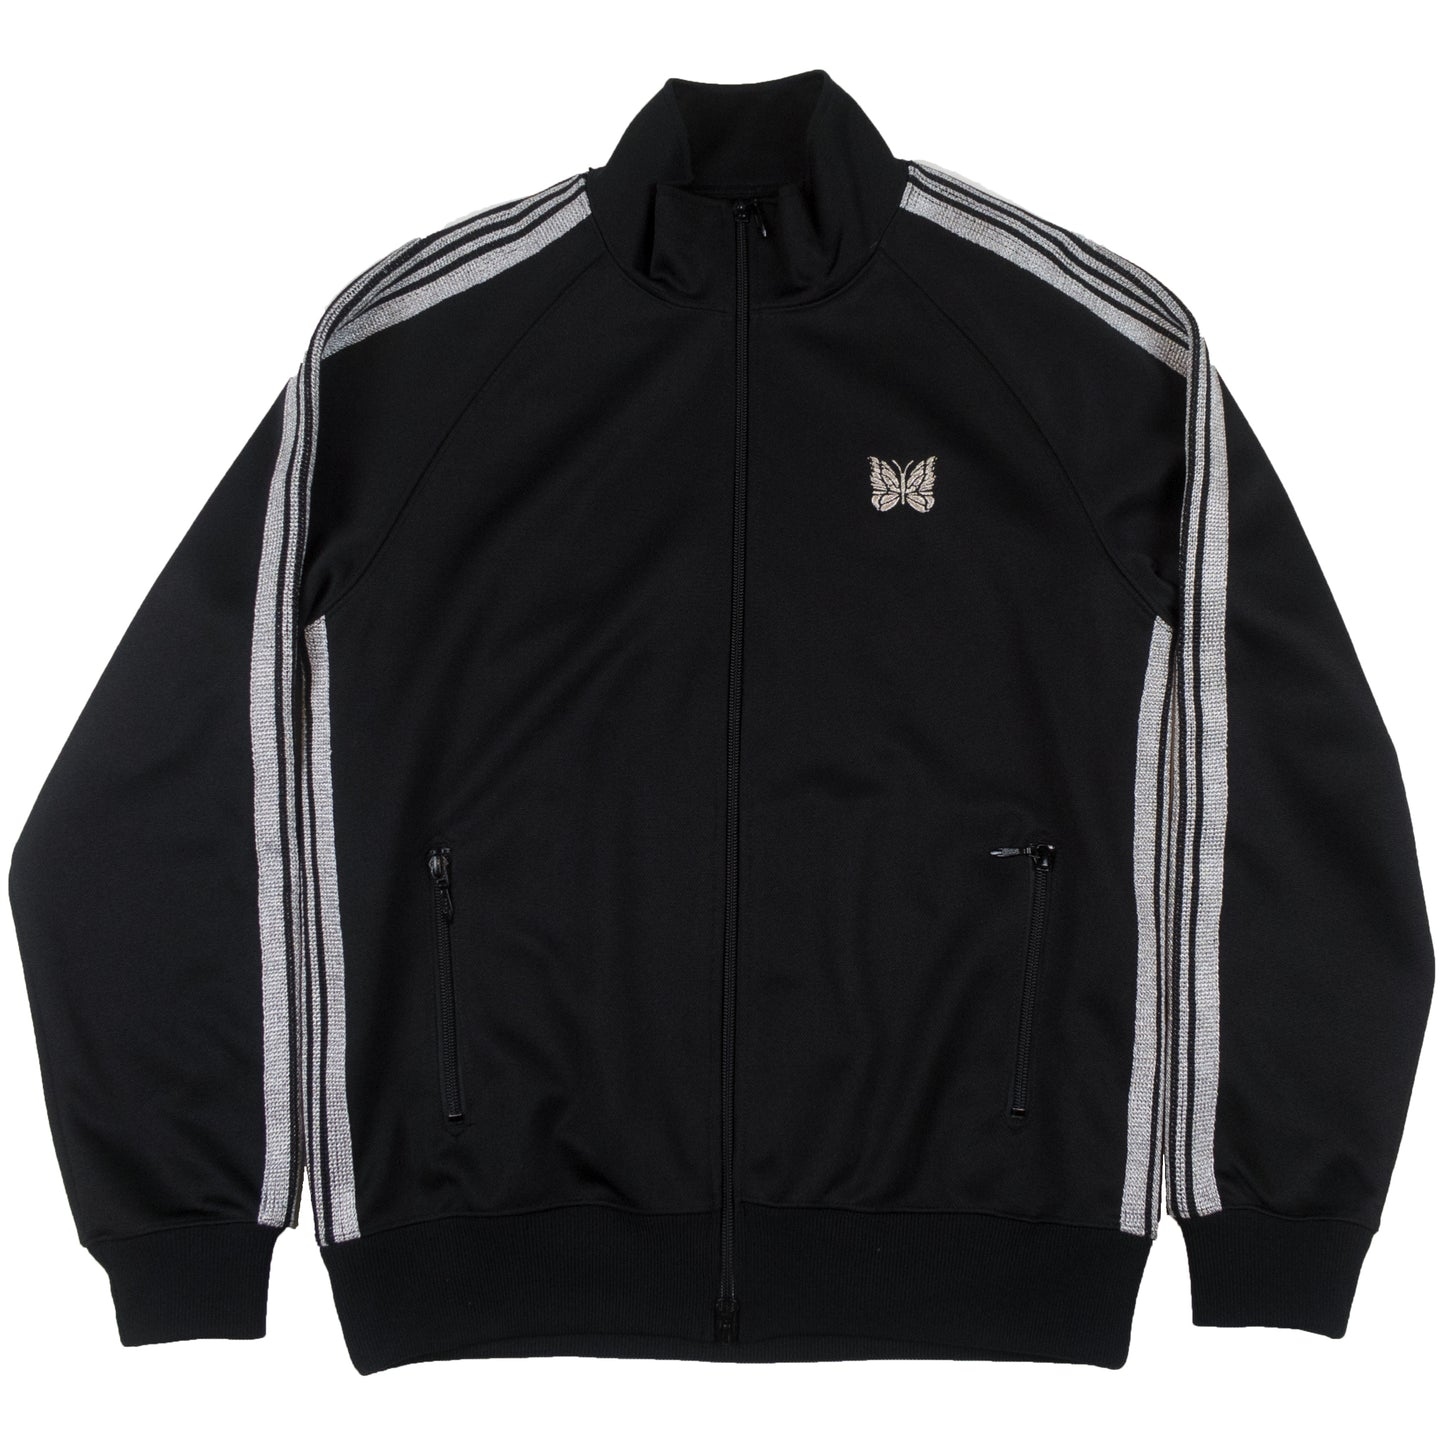 Needles Silver Track Jacket <Br> Size Small